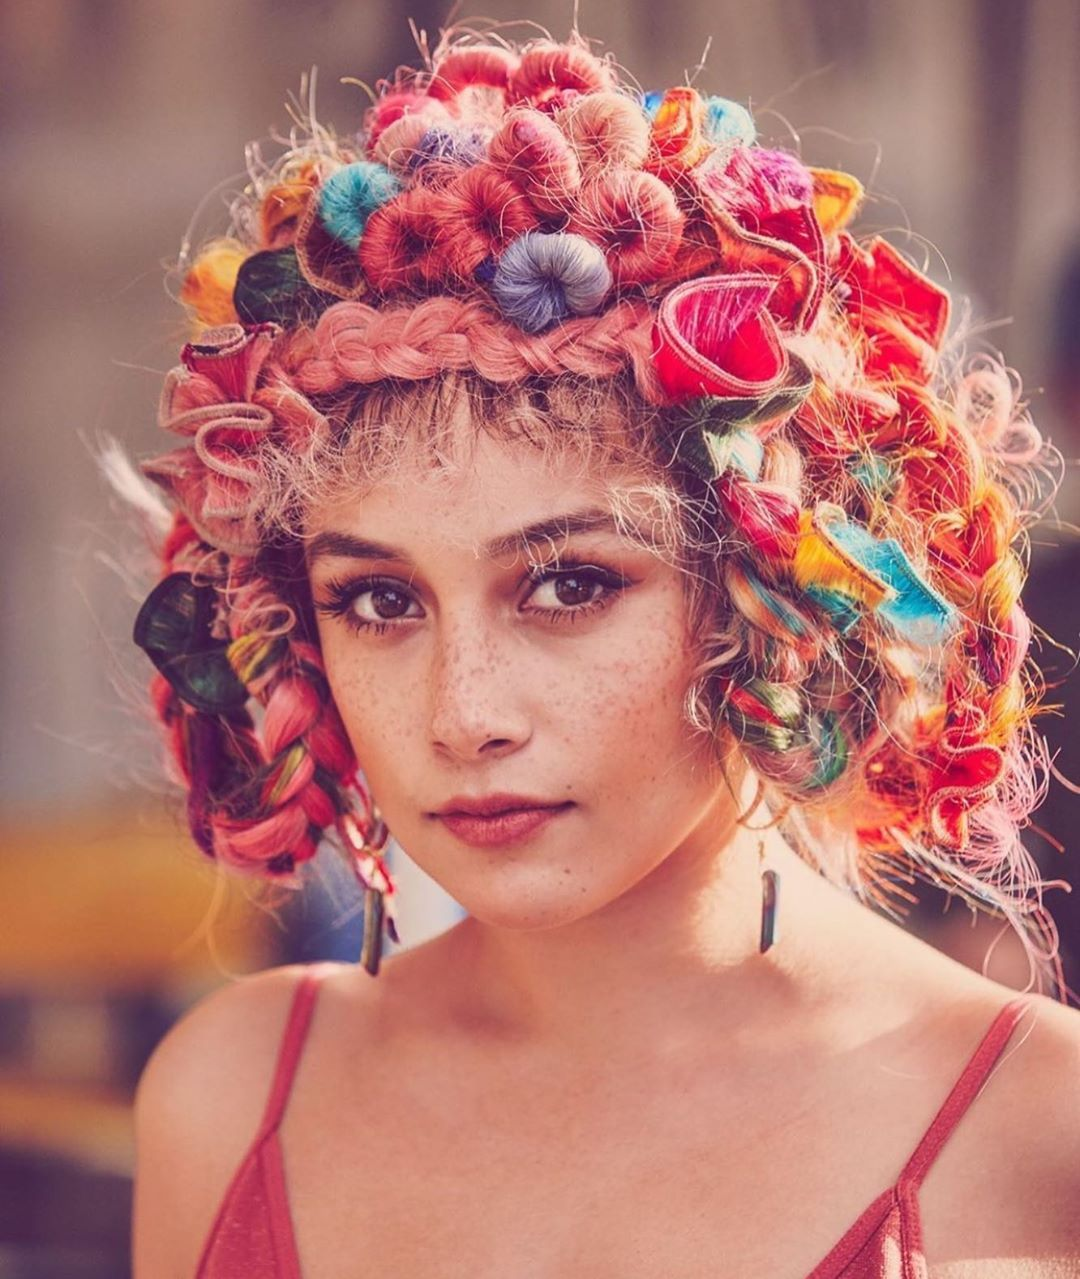 Bohemian Crafted Hair On Instagram Well This Is Beyond Fun Our Stylist Cest Tiffany Created This Crazy Beautiful Look With The H In 2020 Stylists Hair Beautiful